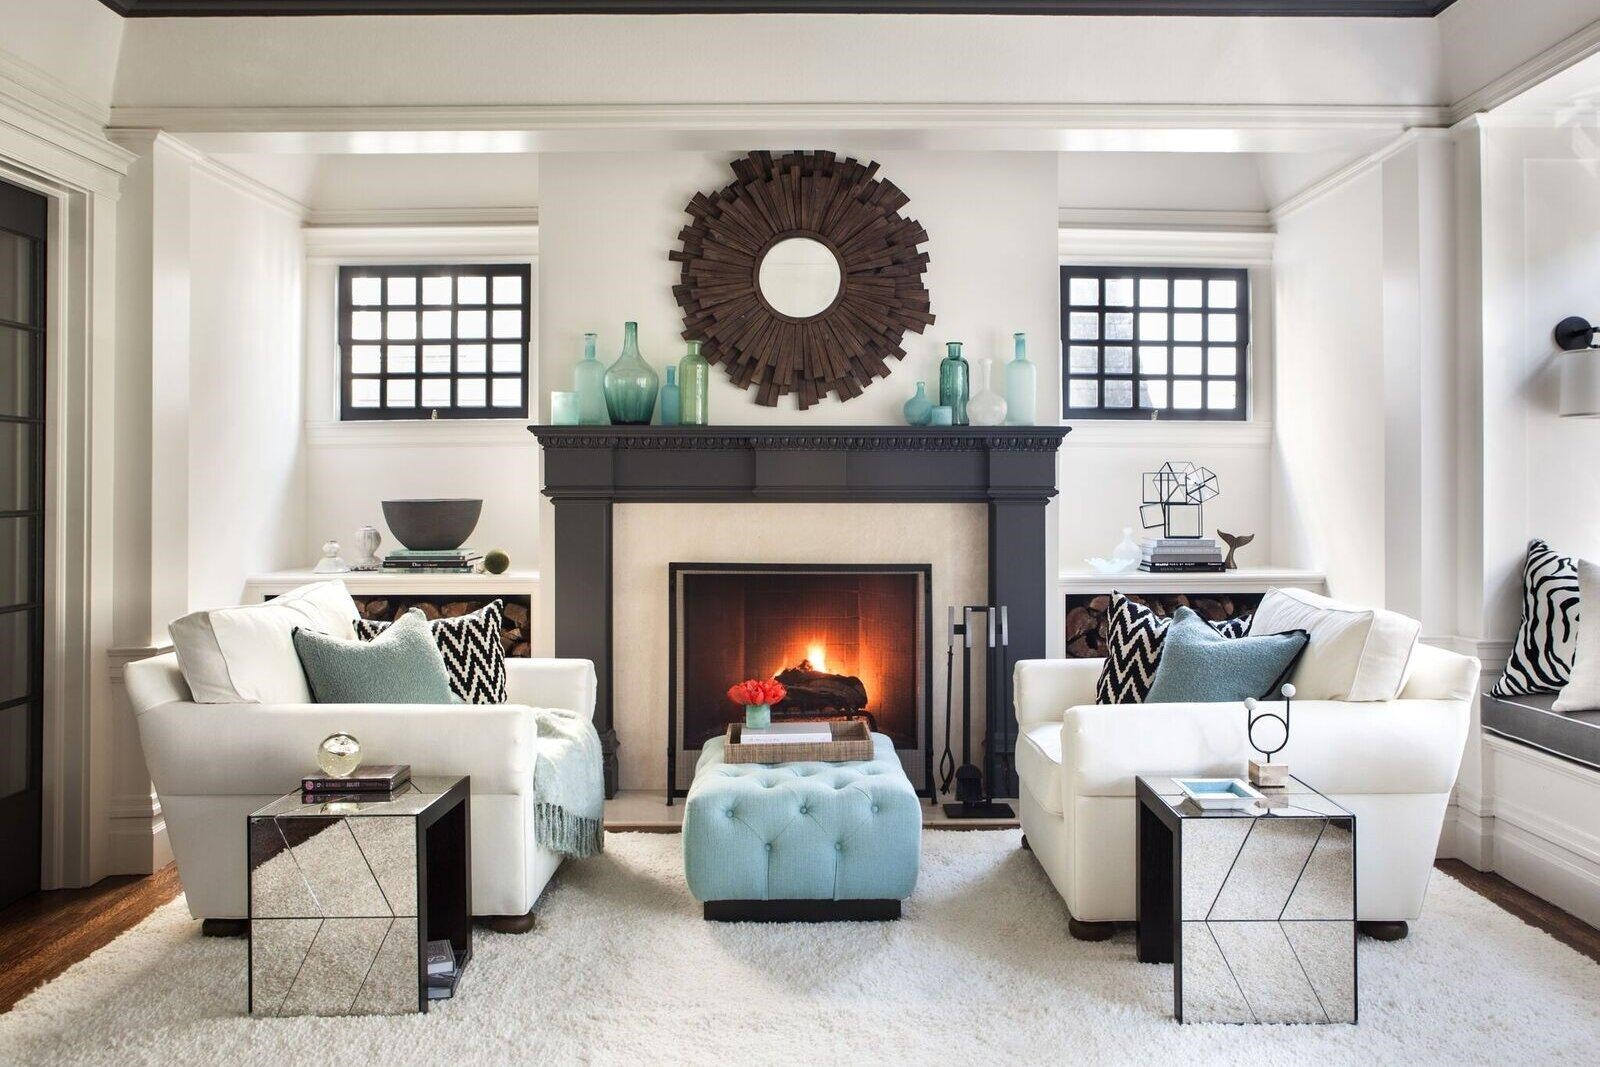 Diy Front Room Makeover Ideas to Undertake This Winter